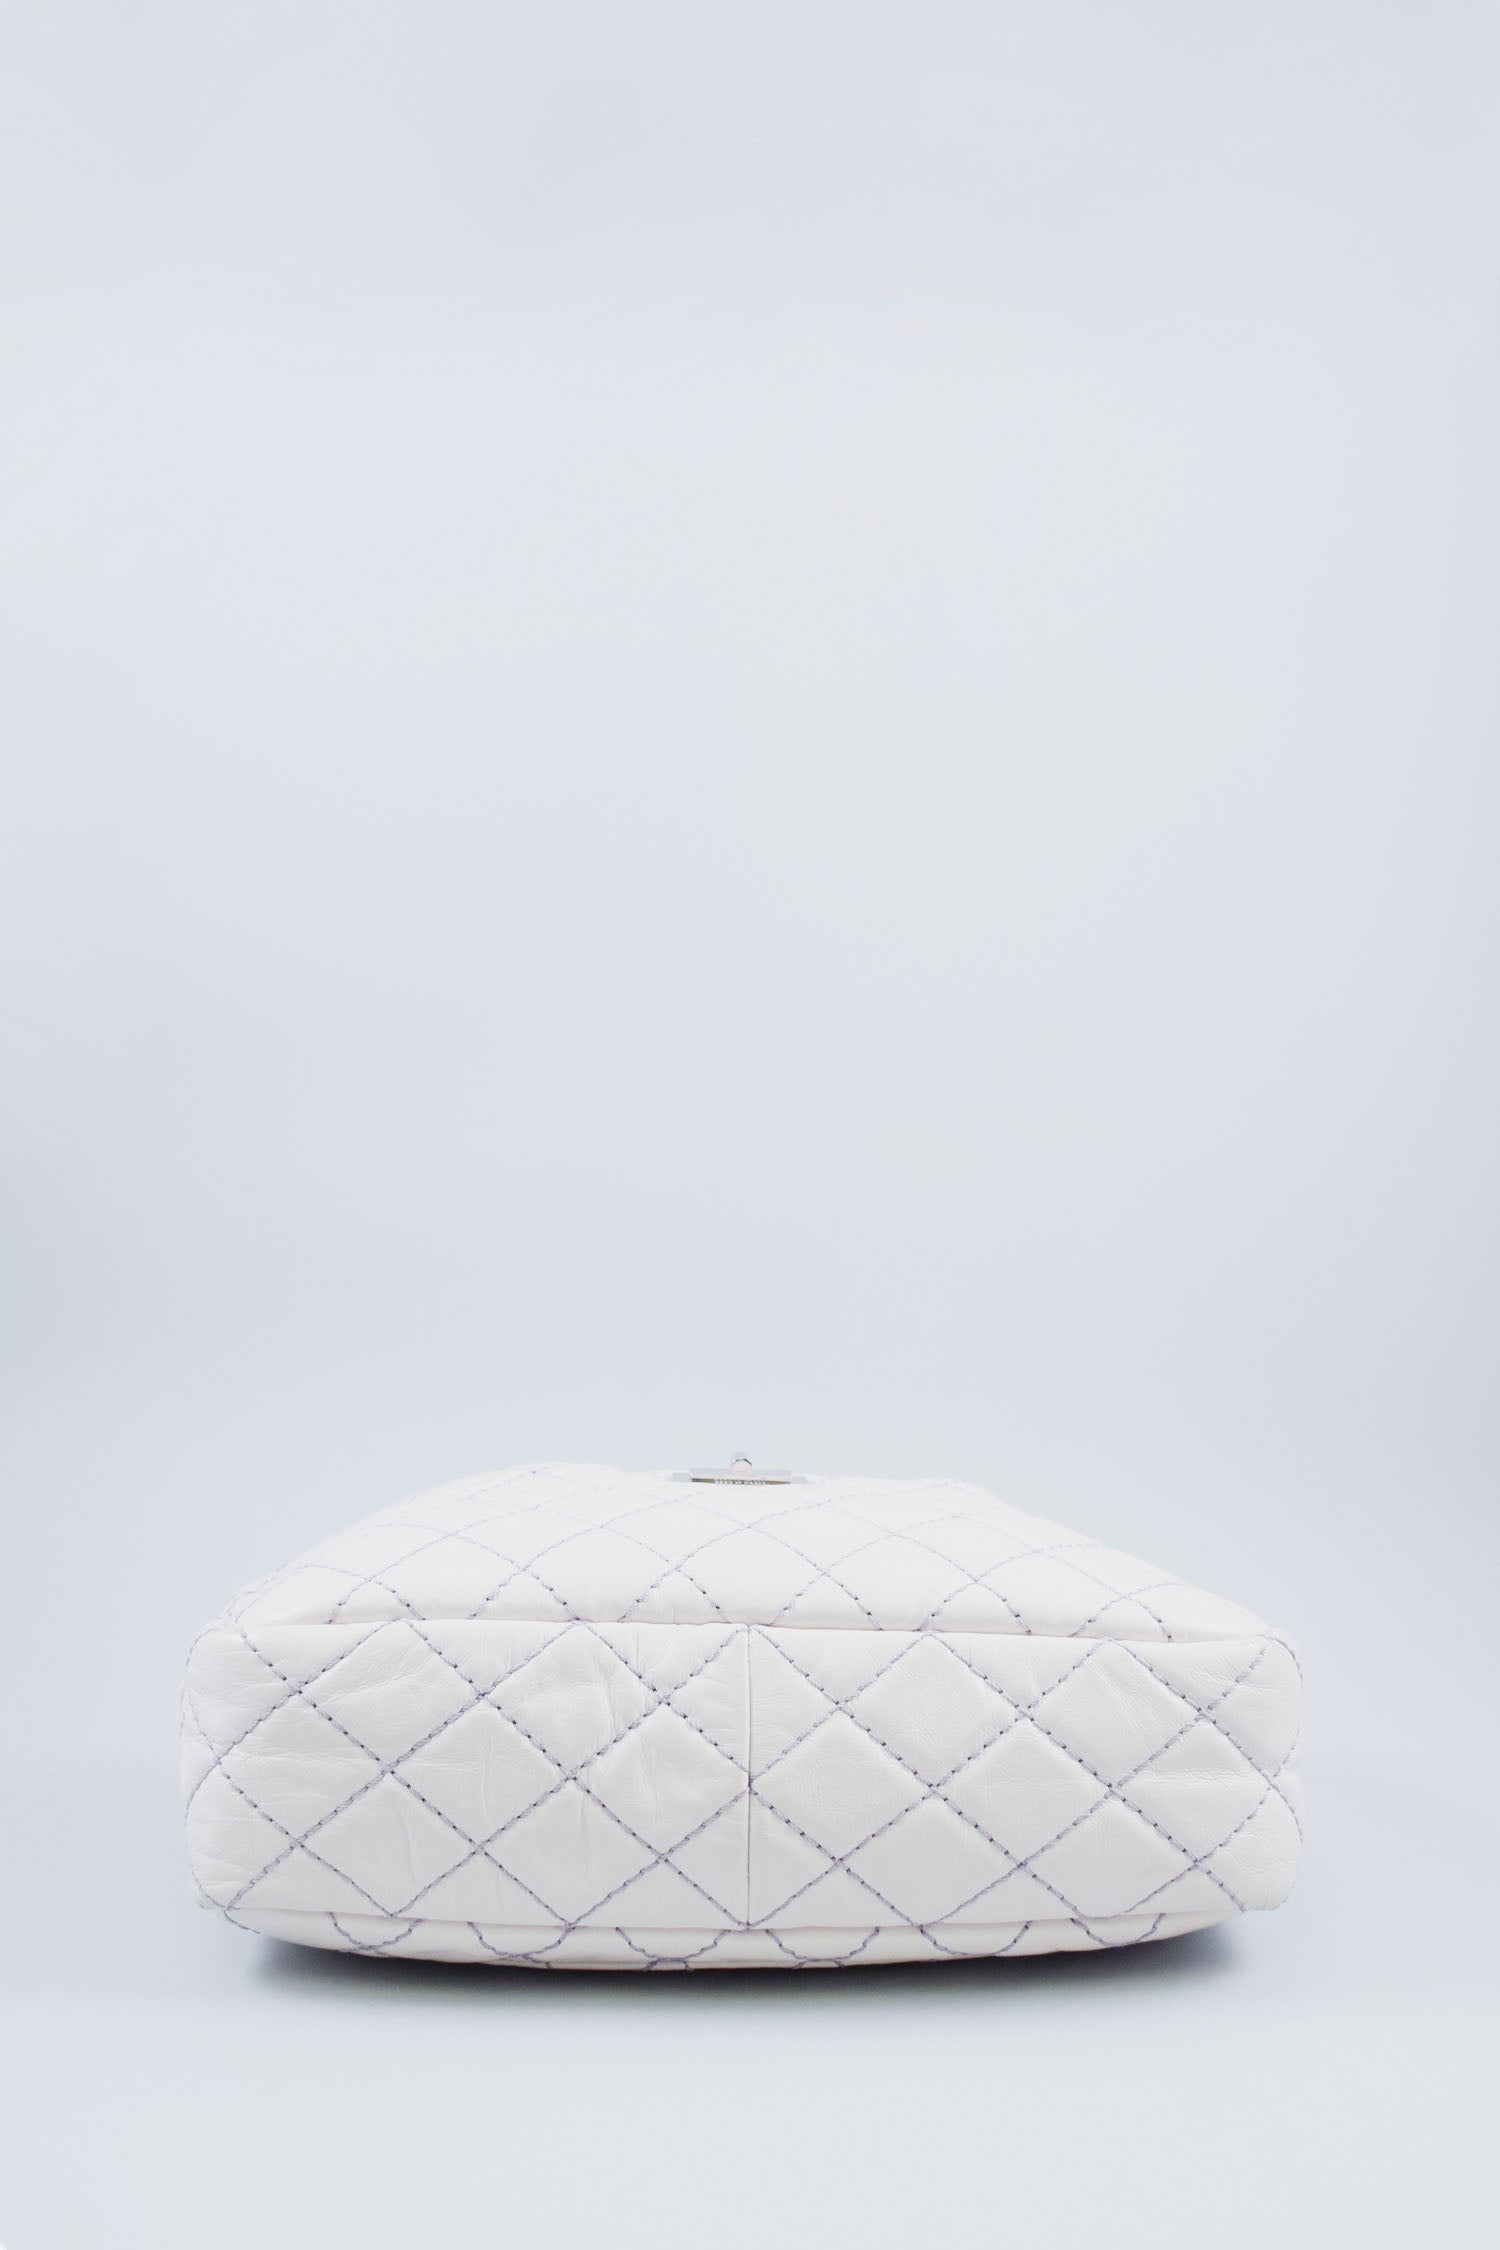 Chanel White Leather Reissue Camera Bag